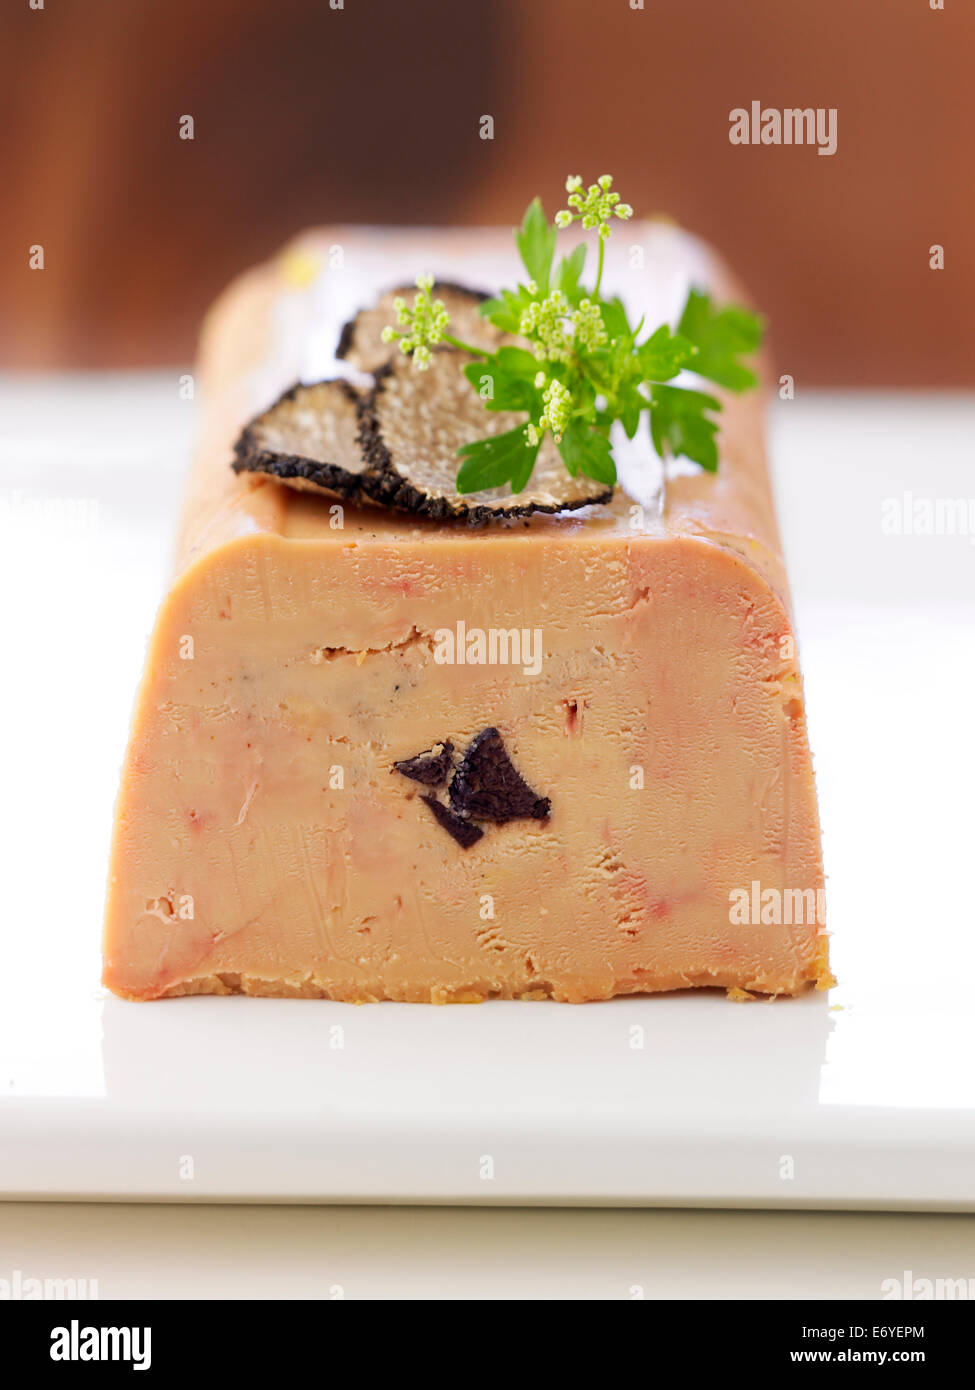 Foie Gras Terrine Foie Gras Terrine With Truffles Stock Photo 73133724 Alamy